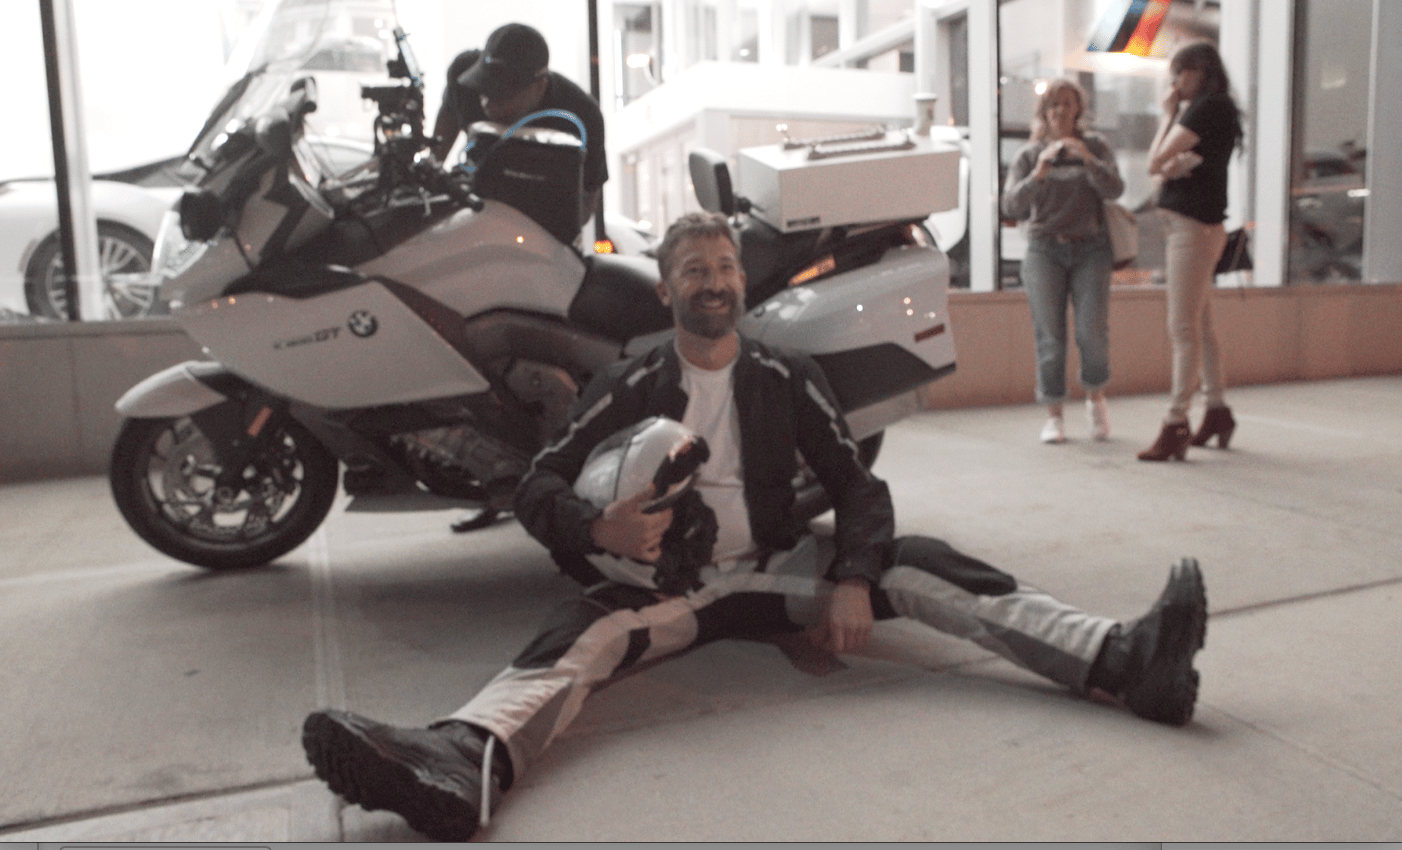 Carl Reese after completing the LA to New York solo motorcycle trip in a record time of 38 hours, 49 minutes.